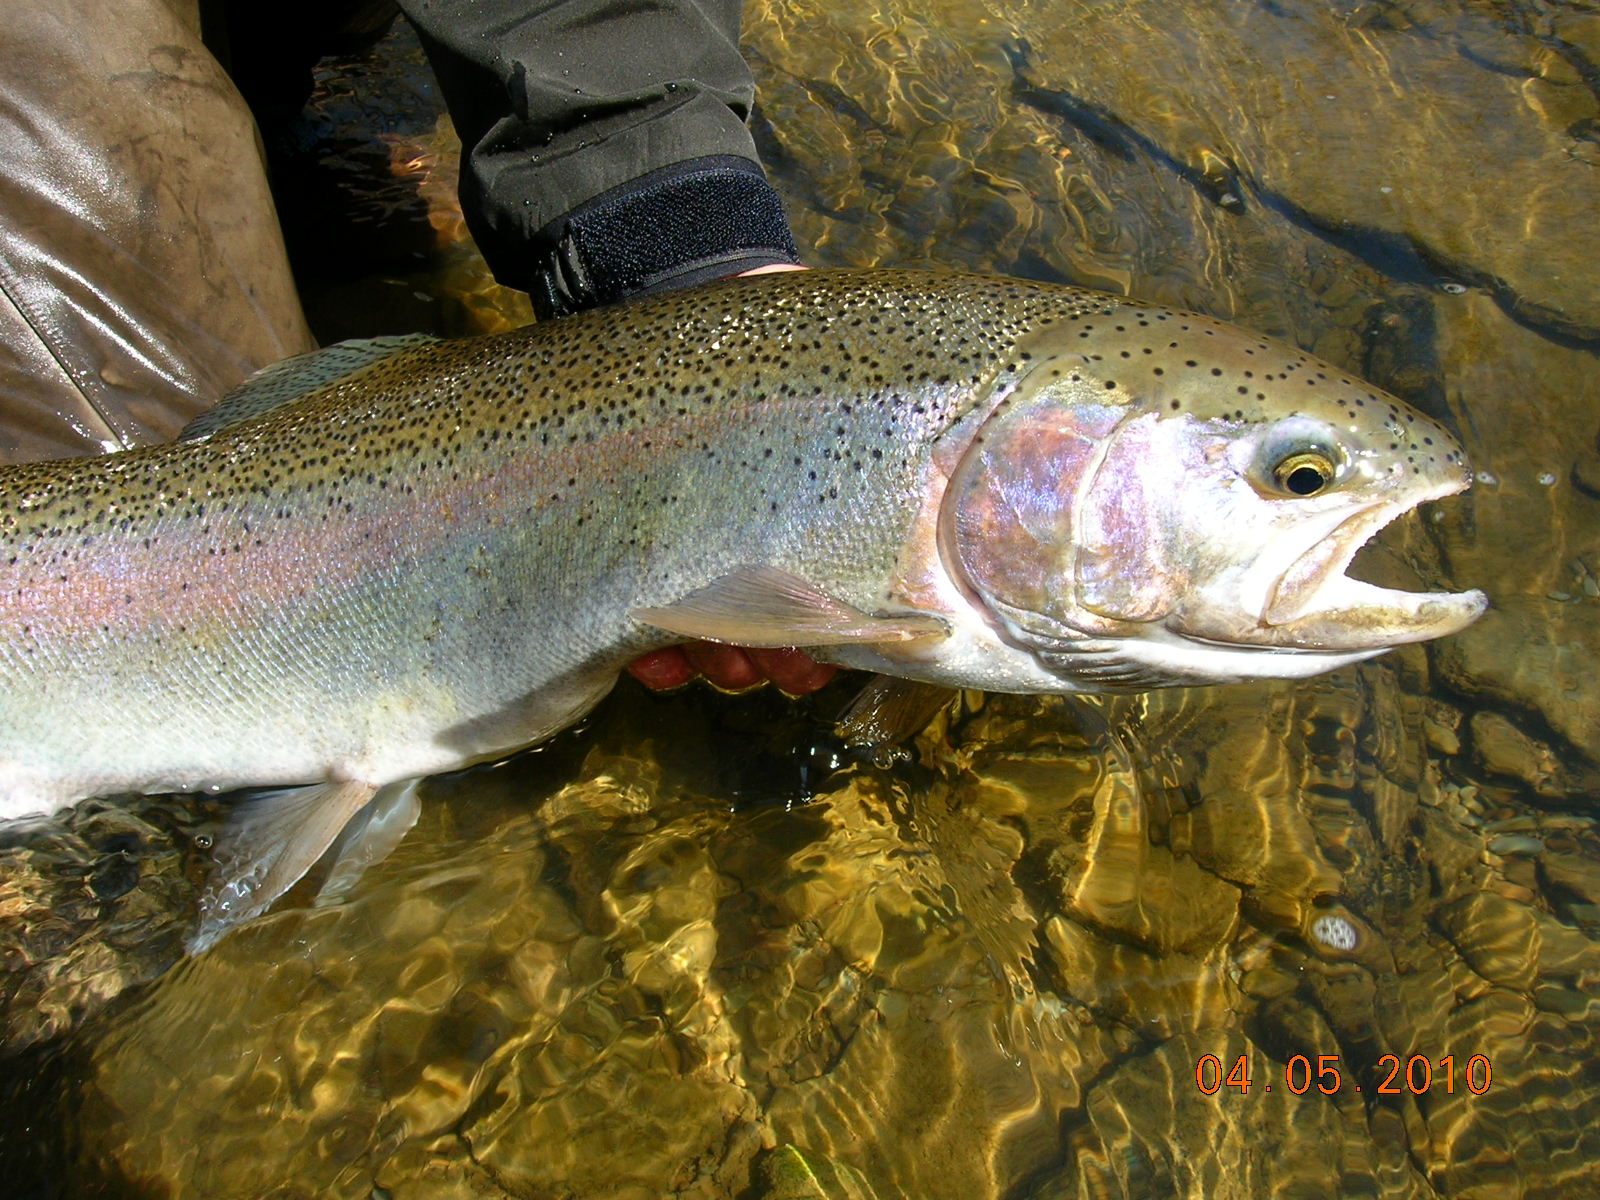 Steelhead alley outfitters lake erie fly fishing guide for Fishing in ohio